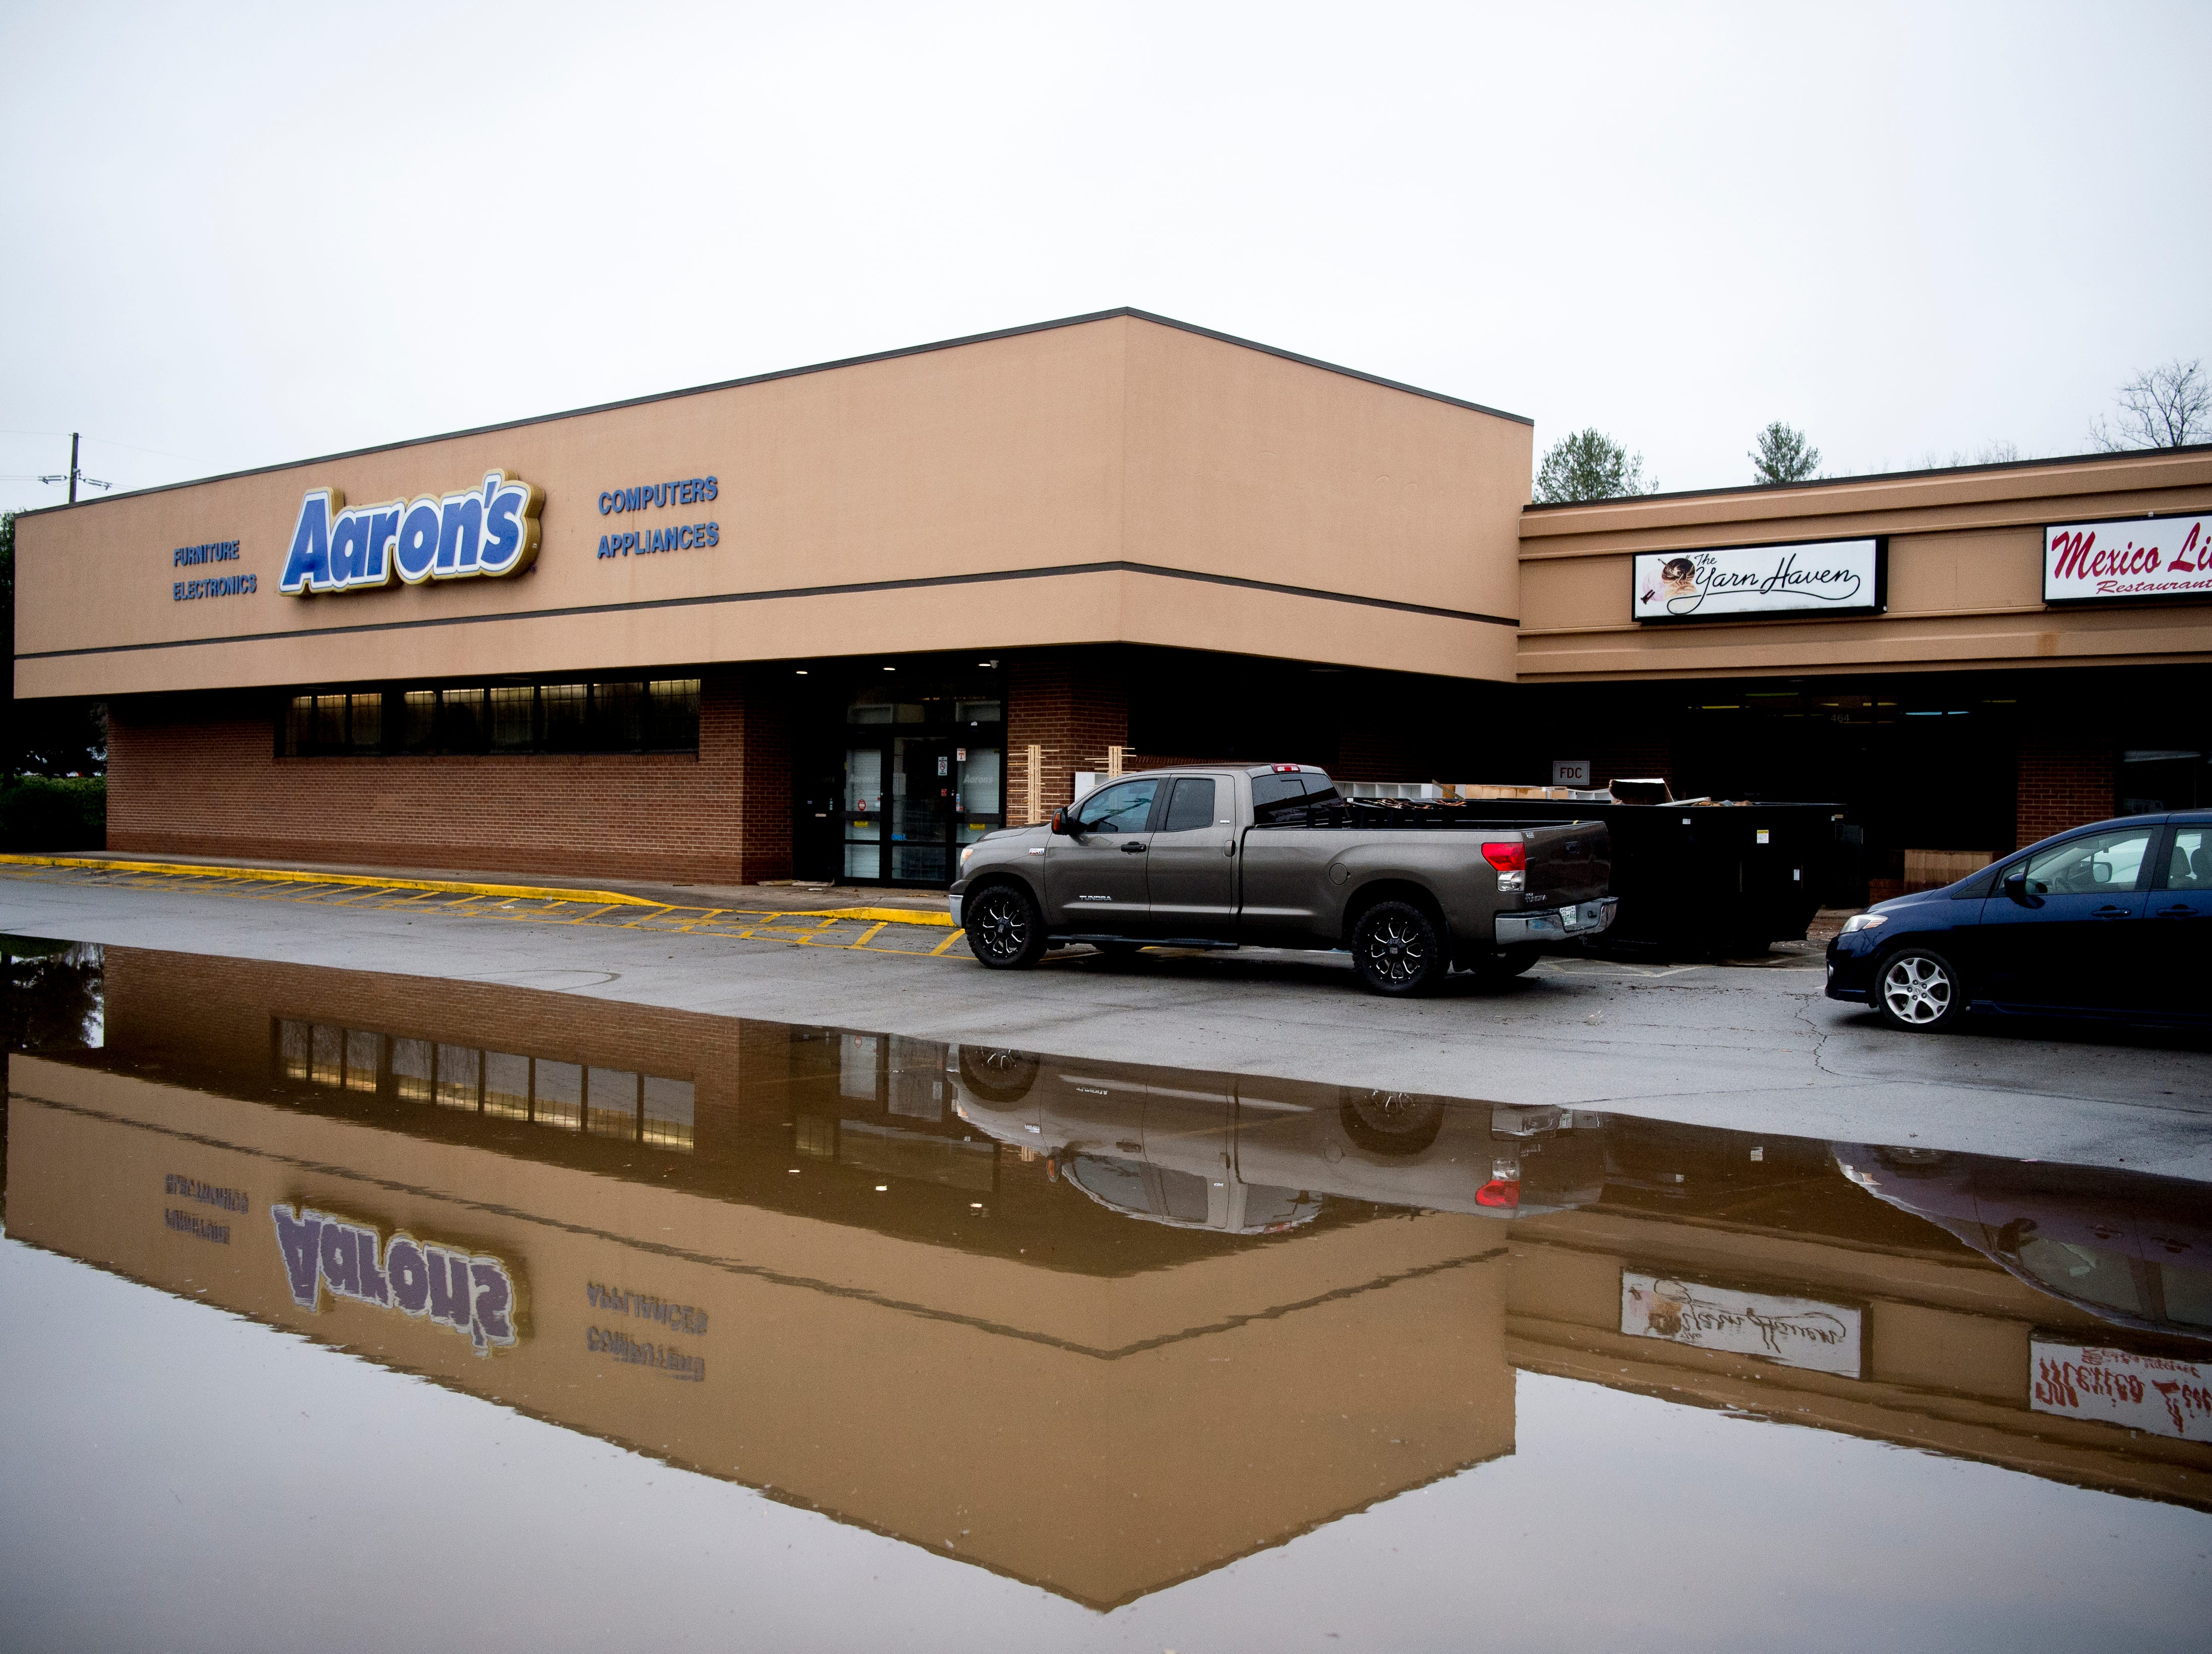 A large pool of water still stands in the parking lot outside of The Yarn Haven at 464 Cedar Bluff Road in Knoxville, Tennessee on Friday, March 1, 2019. Nearly a quarter of the stores inventory including furniture and paperwork was lost in the floodwaters, which reached over a foot in depth. The owners estimate it will take them a minimum of two months until they can open up shop again.